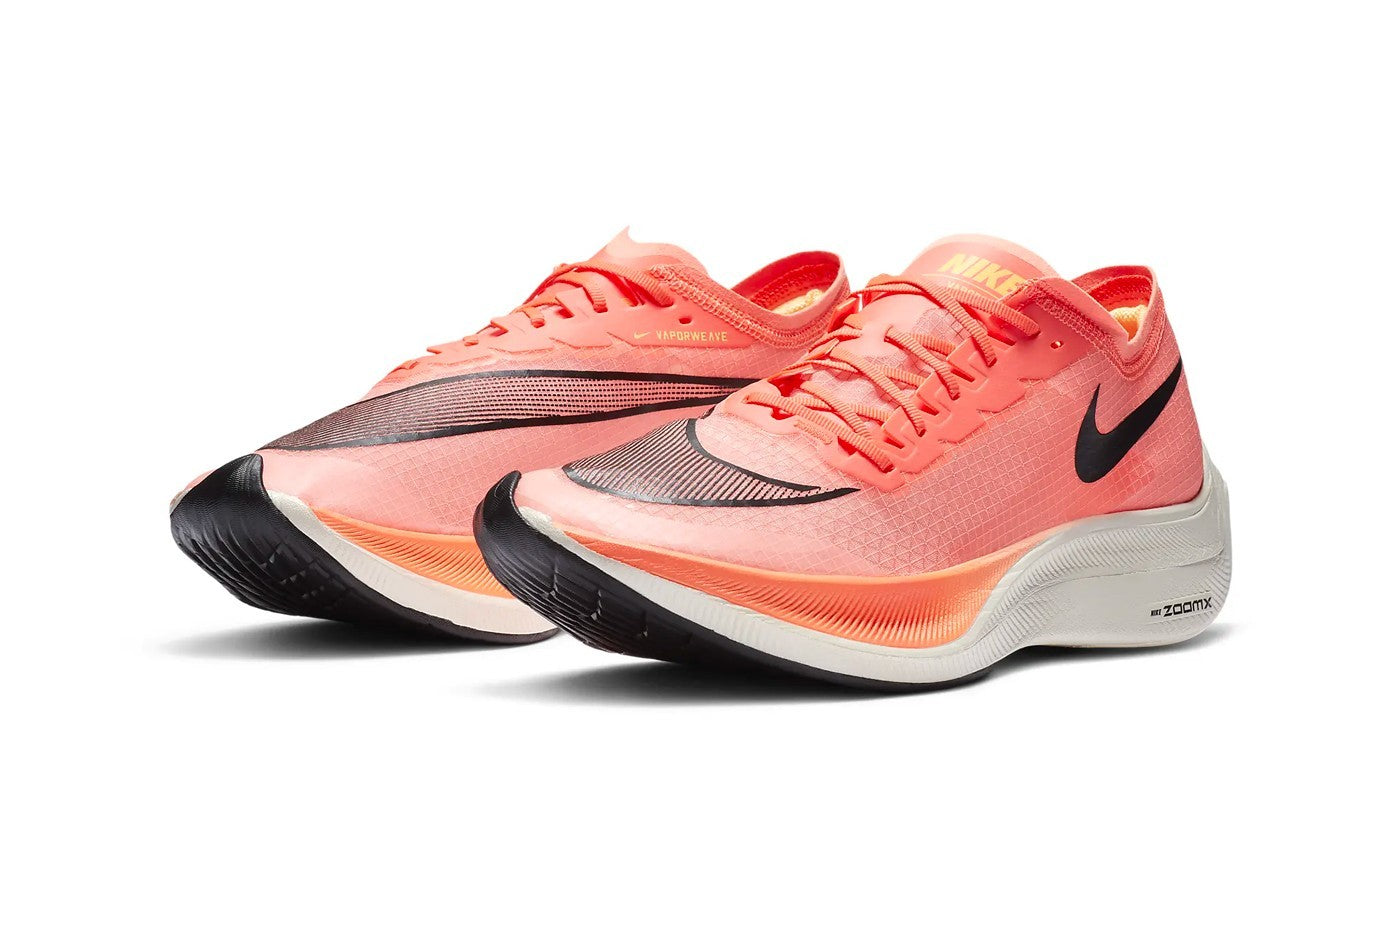 Nike ZoomX Vaporfly Next% - Bright Mango/Citron Pulse/Black/Blackened Blue #AO4568-800-Preorder Item-Navy Selected Shop